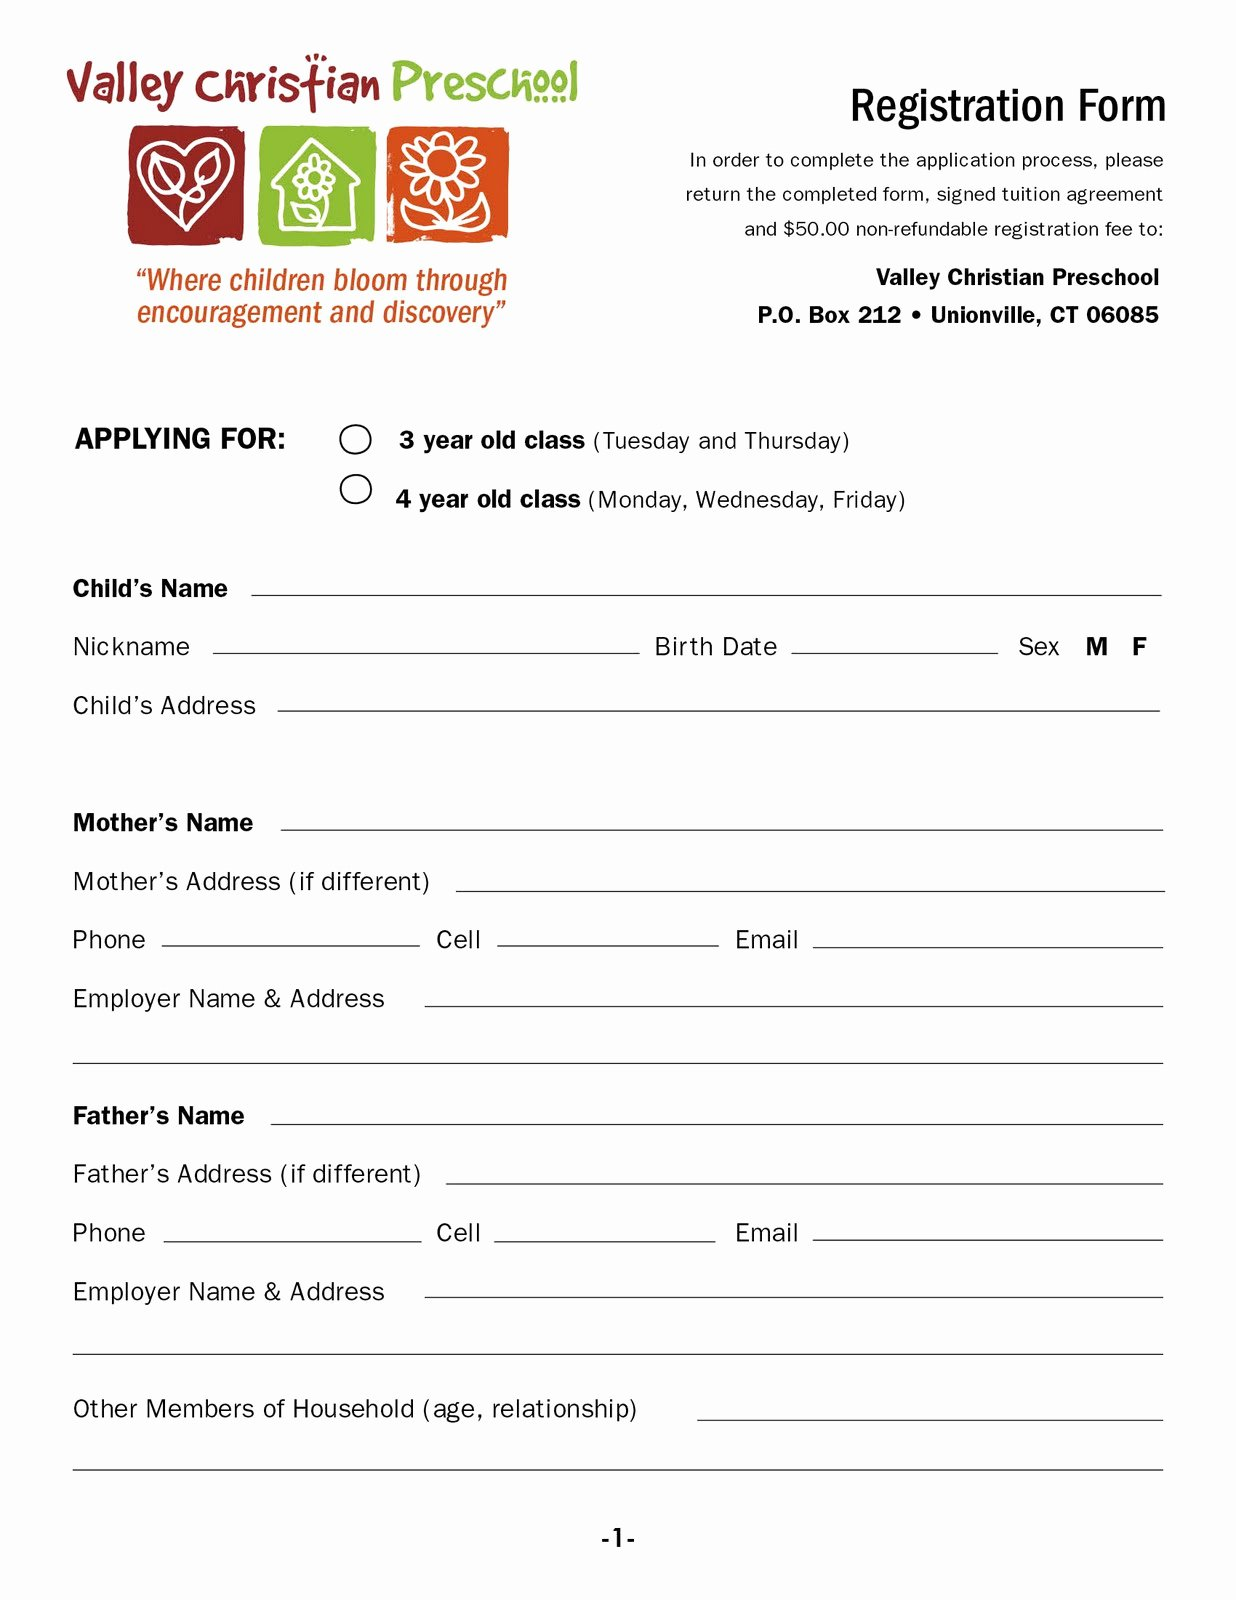 School Registration forms Template Inspirational Valley Christian Preschool Download A Registration form